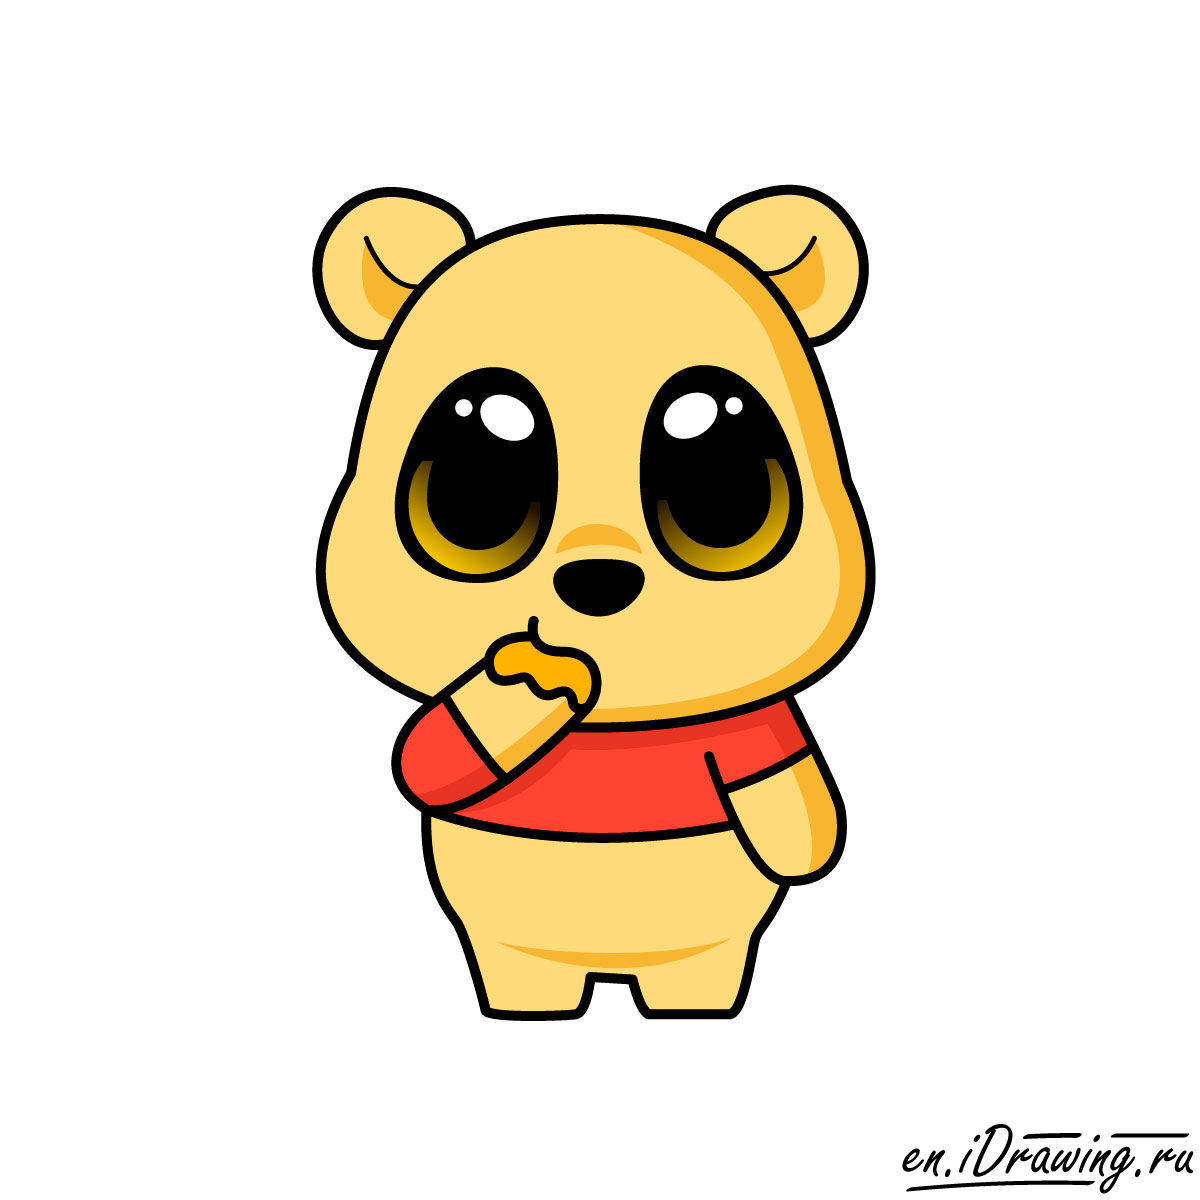 1200x1200 How To Draw Pooh Bear Chibi Style